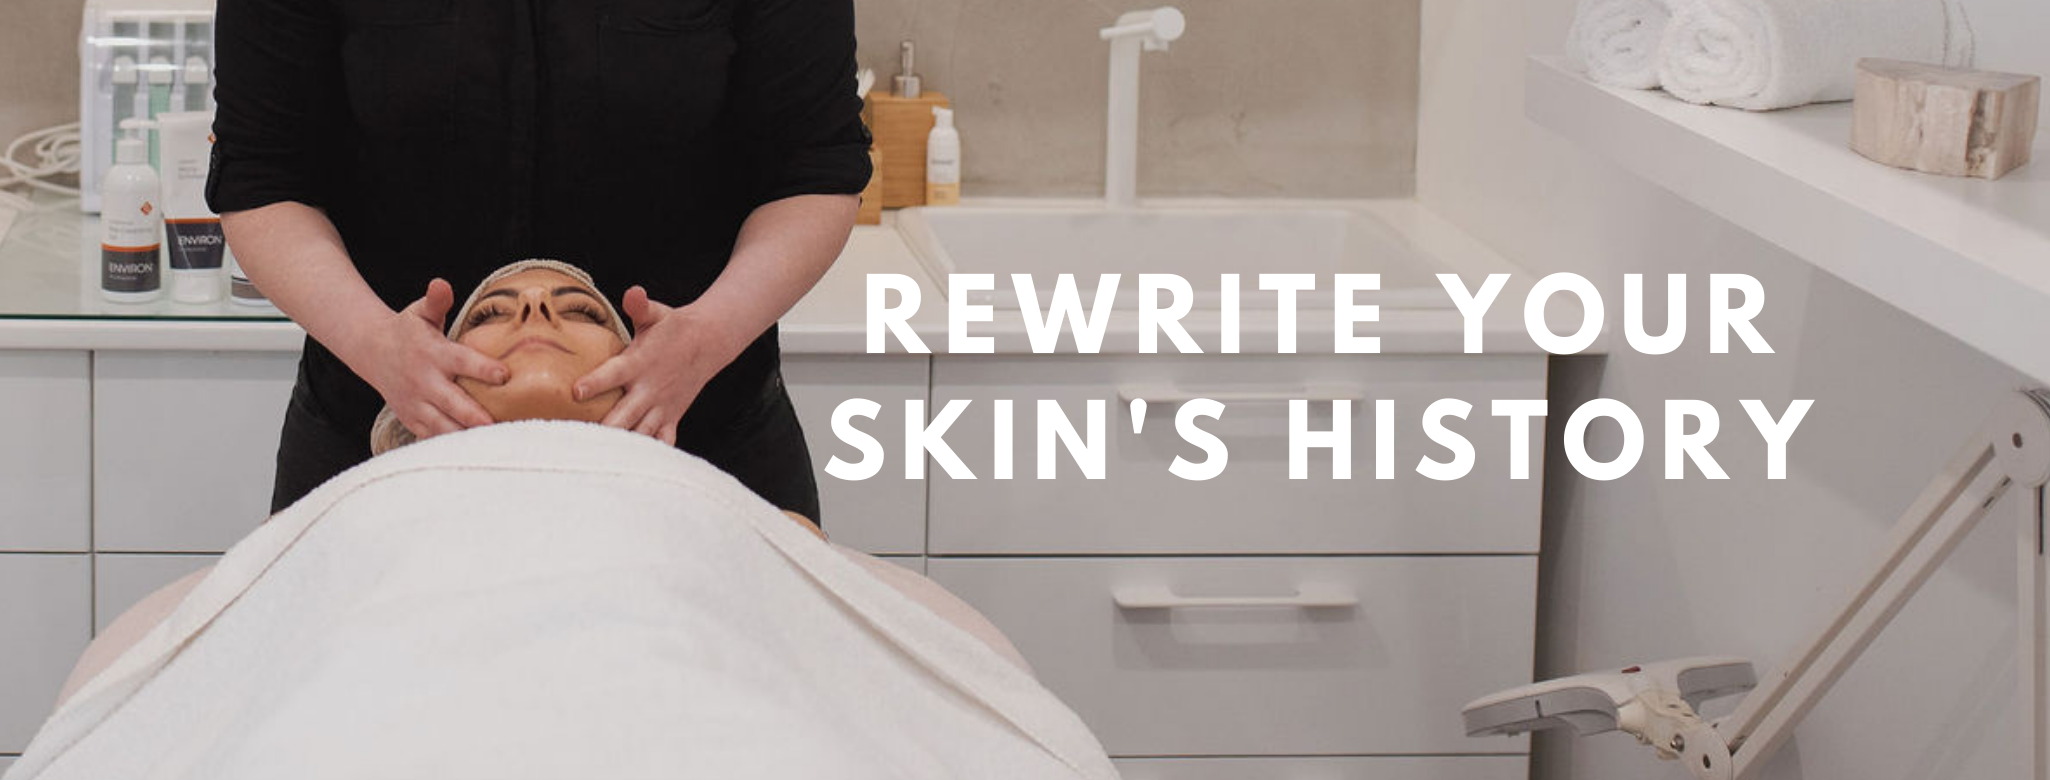 Rewrite your skin's history